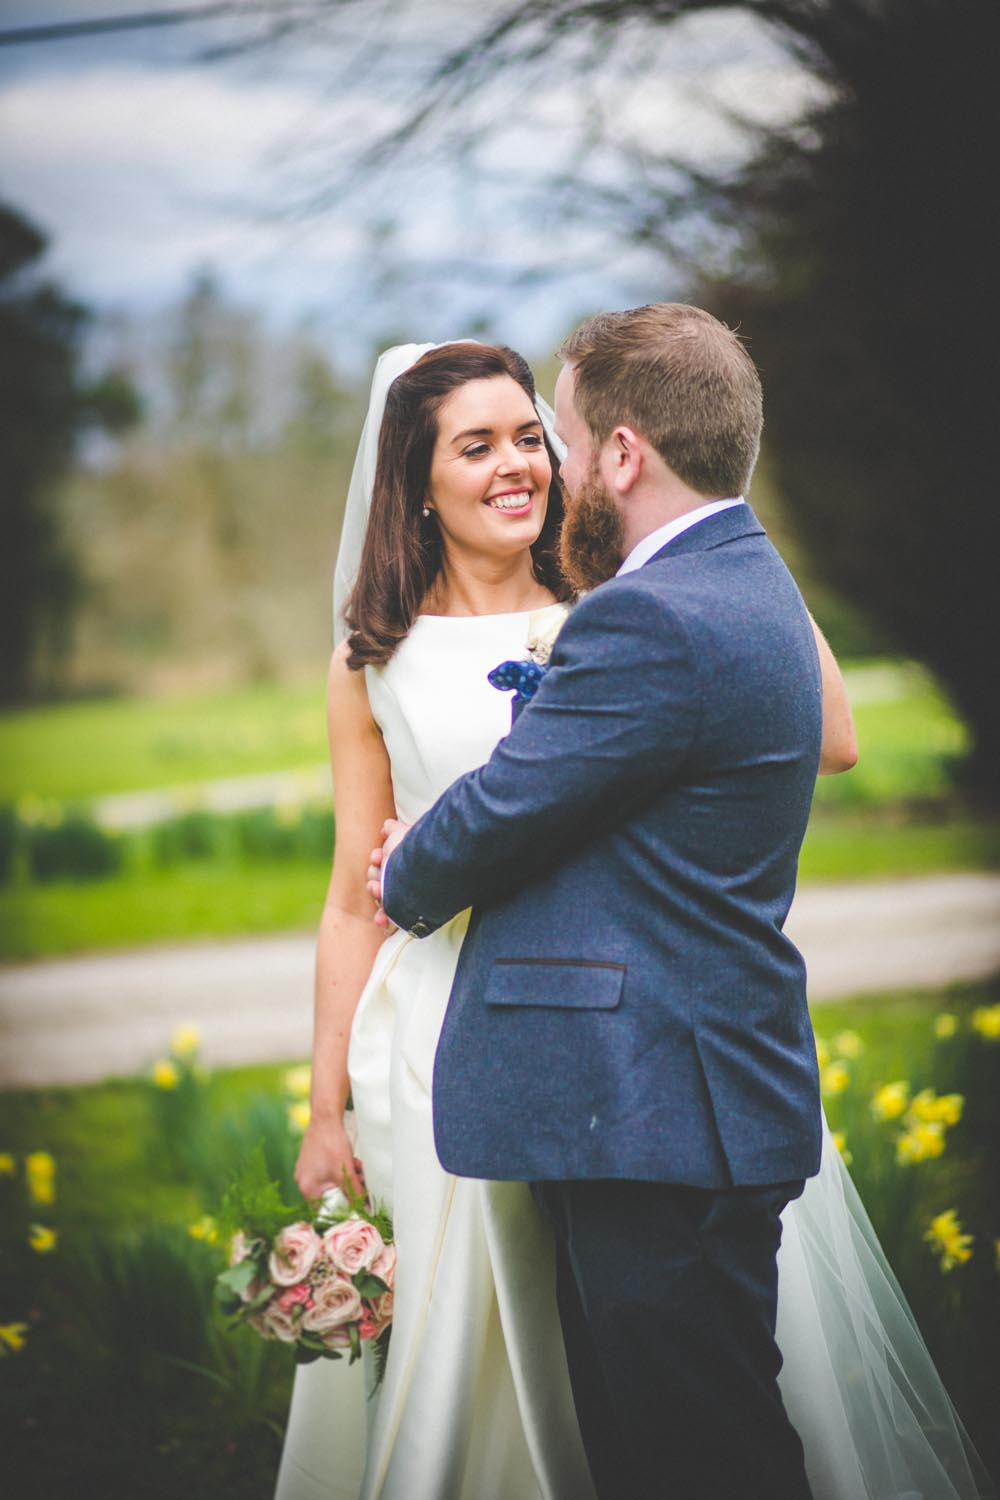 Step House wedding photographer Carlow Borris091.jpg